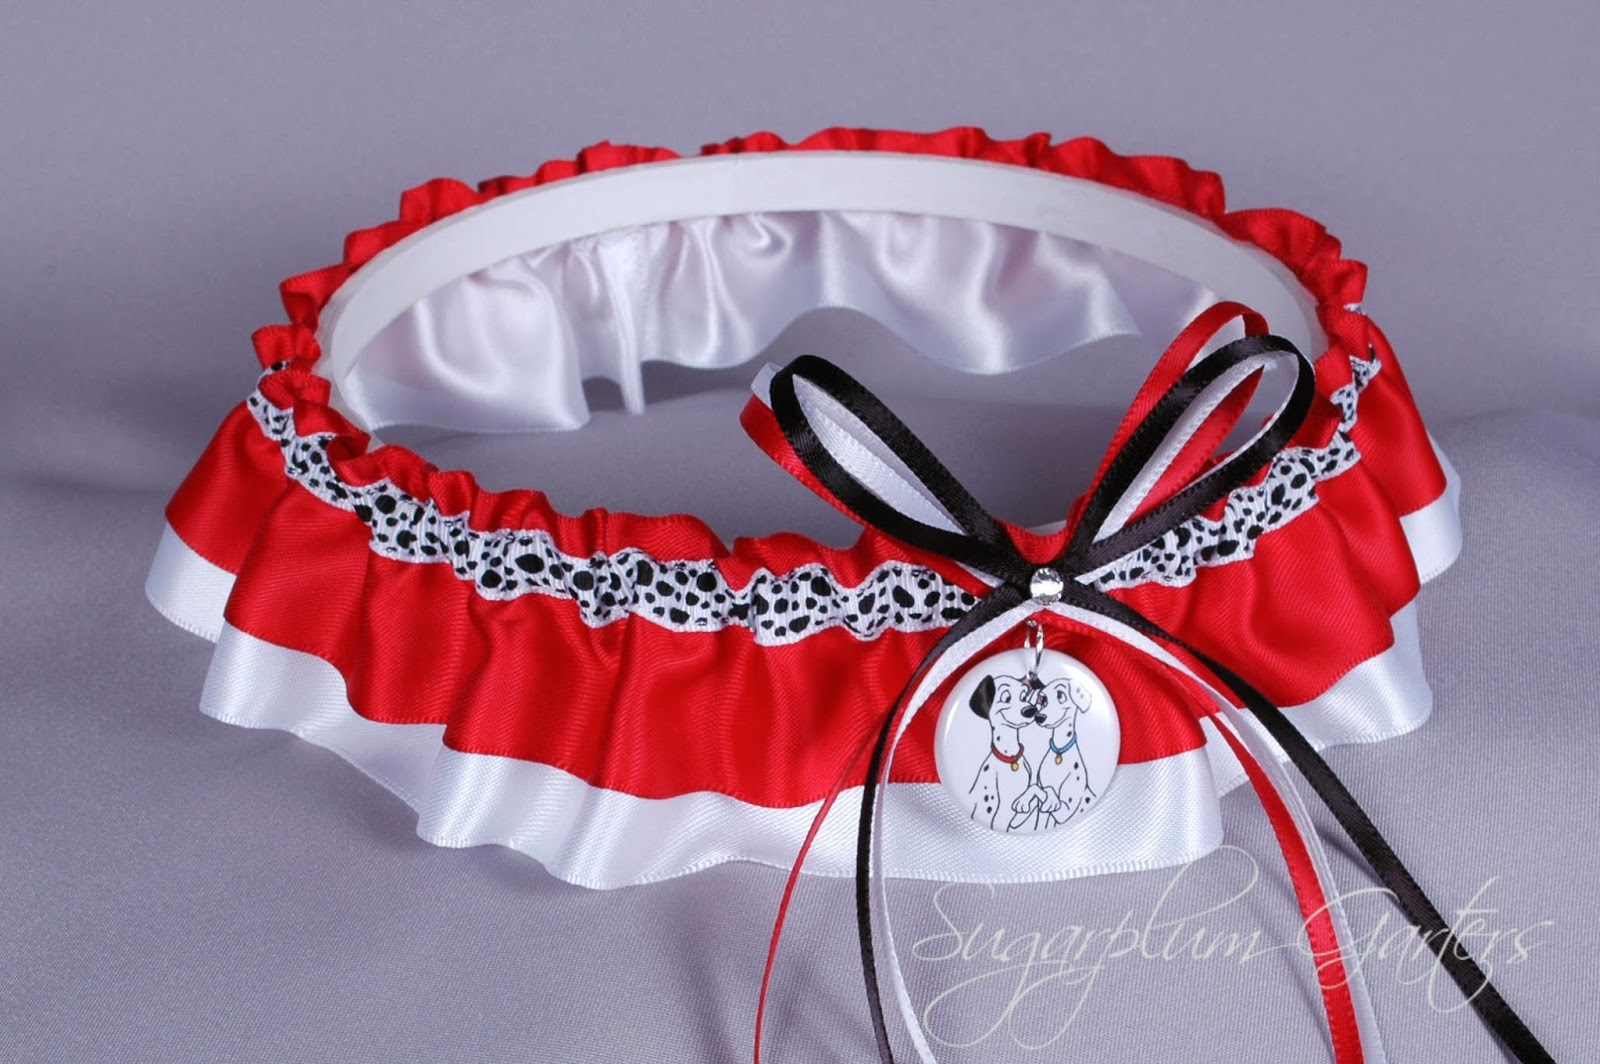 101 Dalmatians Inspired Custom Wedding Garter by Sugarplum Garters